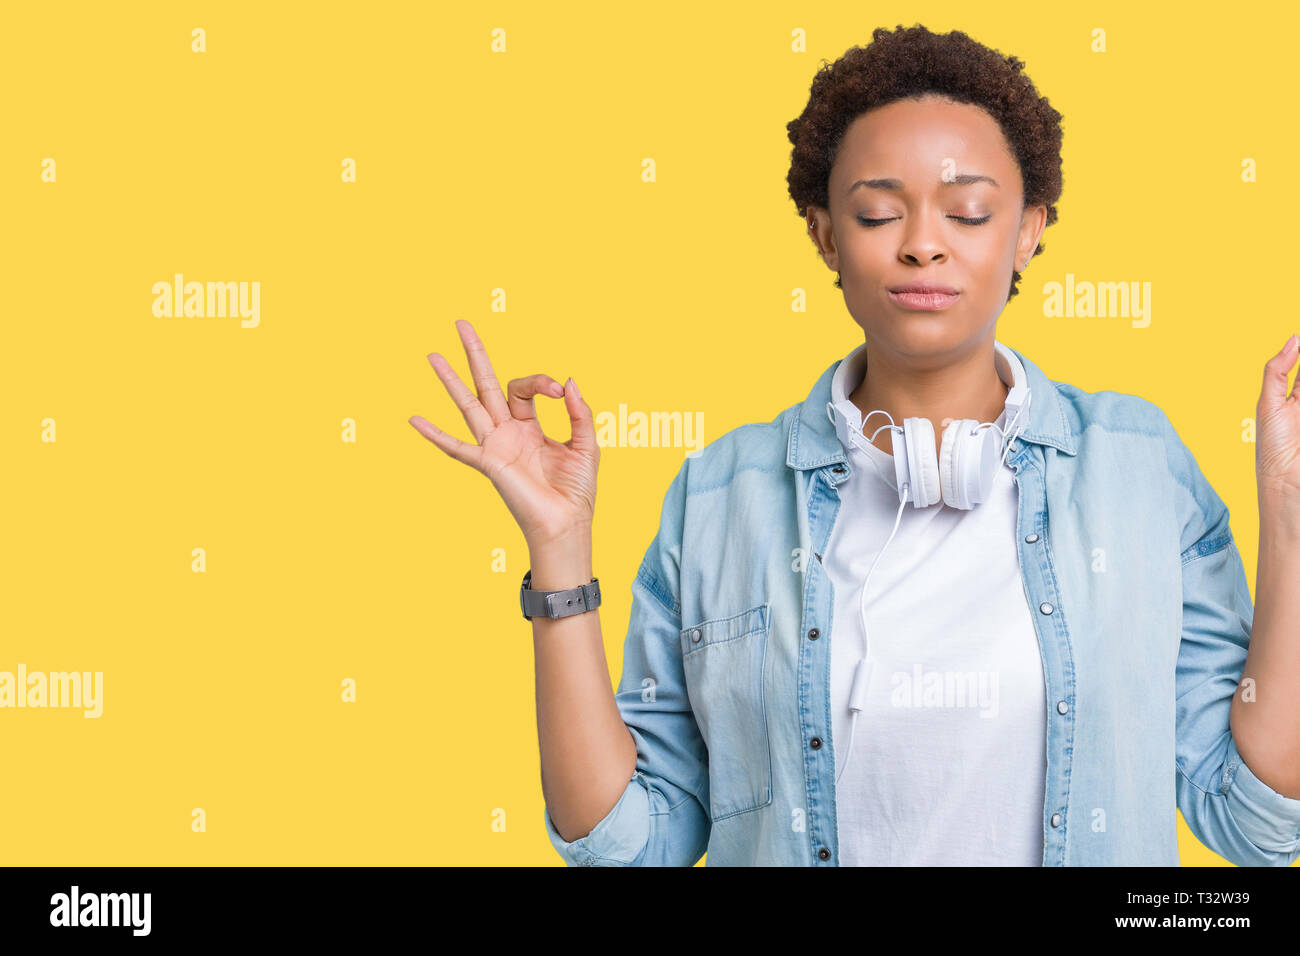 Young african american woman wearing headphones over isolated background relax and smiling with eyes closed doing meditation gesture with fingers. Yog - Stock Image